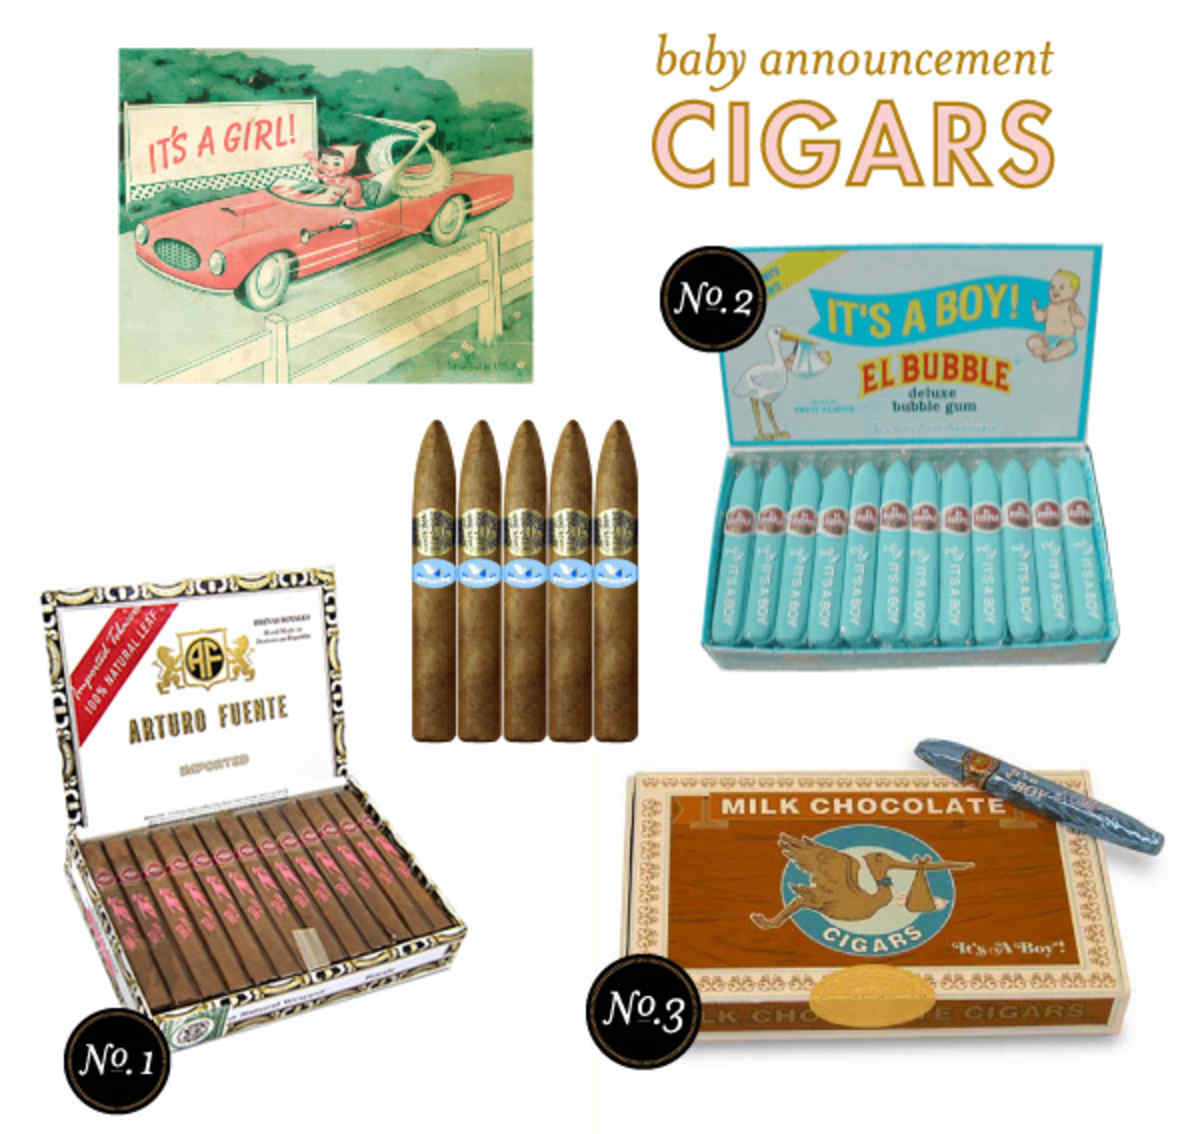 baby announcement cigars